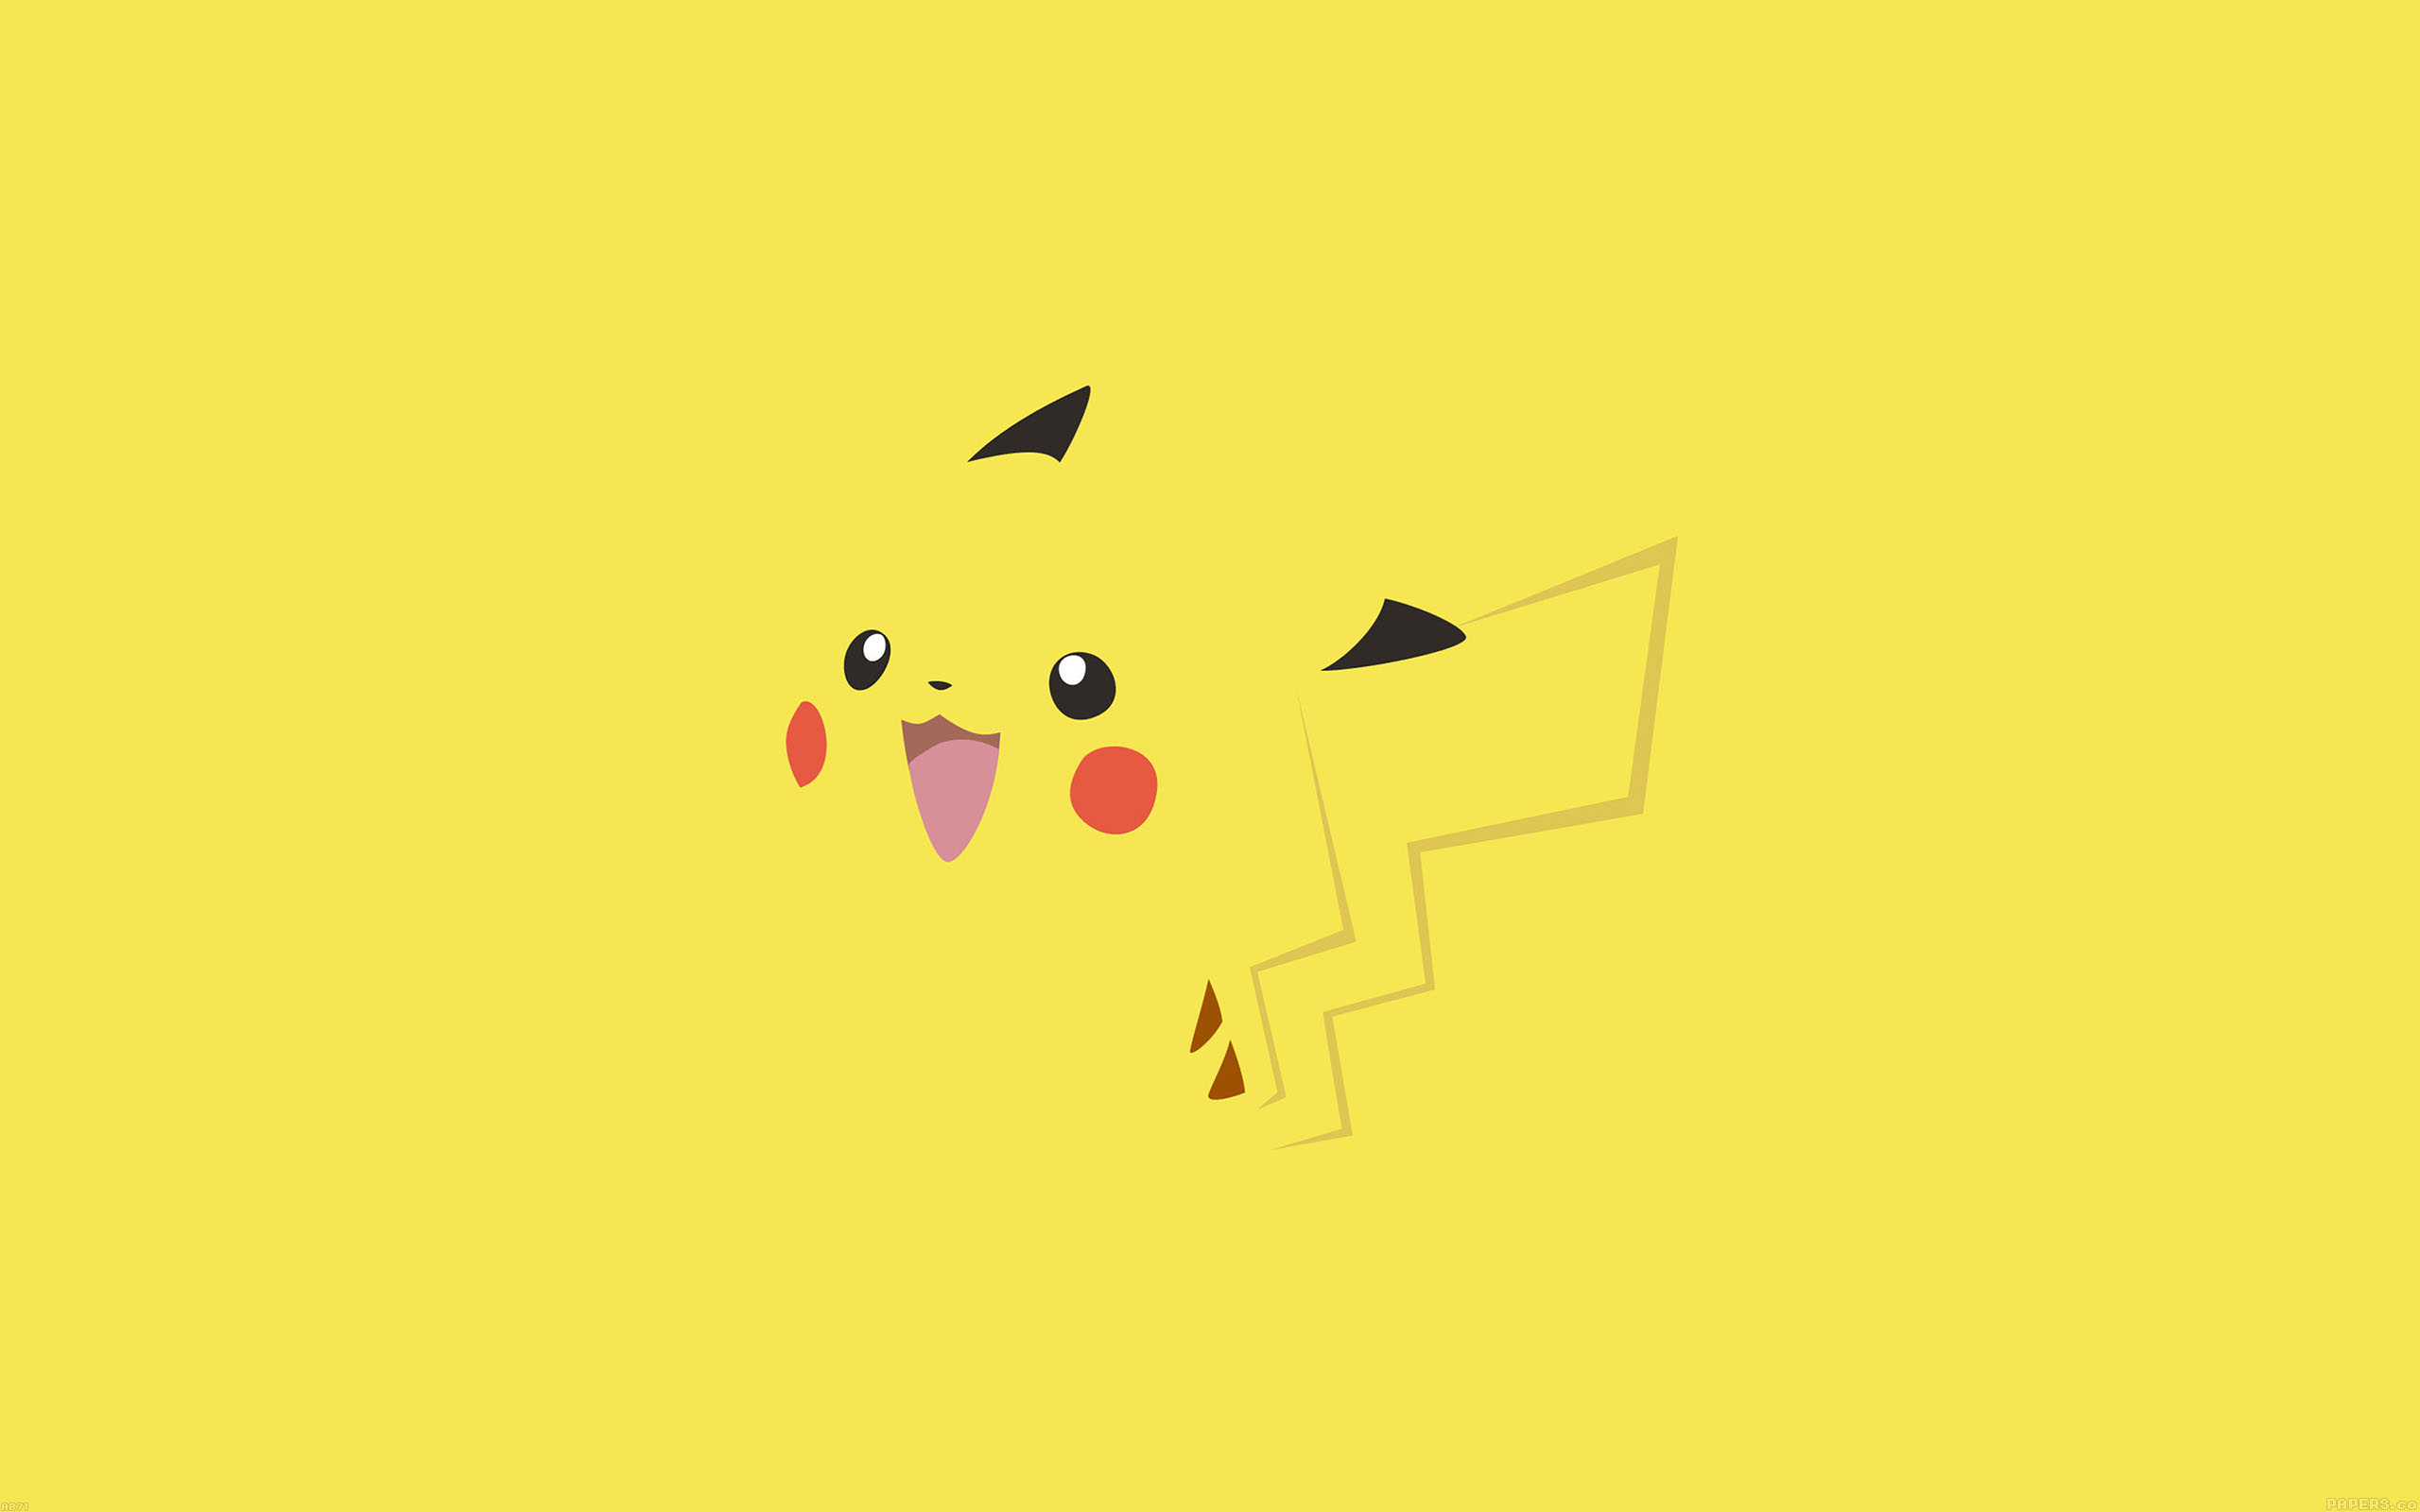 Cute Pokemon Iphone 5 Wallpaper Ab71 Wallpaper Pikachu Yellow Anime Papers Co